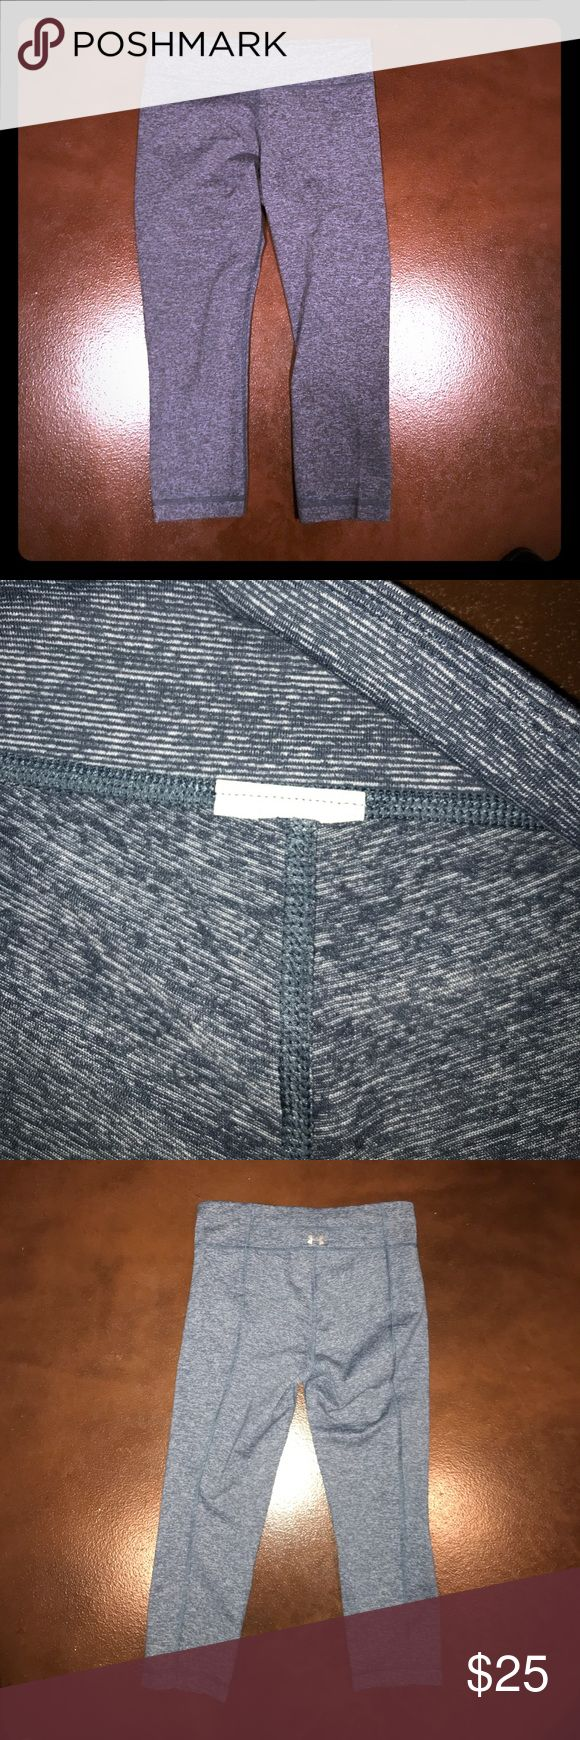 Under Armour Heathered Blue Capri Workout Pants NWOT NEVER WORN Capri workout pants by Under Armour. I did cut the tag out when I tried them on because it felt itchy and I thought I would keep them but I am positive of the size. Other than that, they're in perfect condition with double lining so they won't wear or turn see through and a hidden pocket in the waistband for phone or keys. Under Armour Pants Track Pants & Joggers